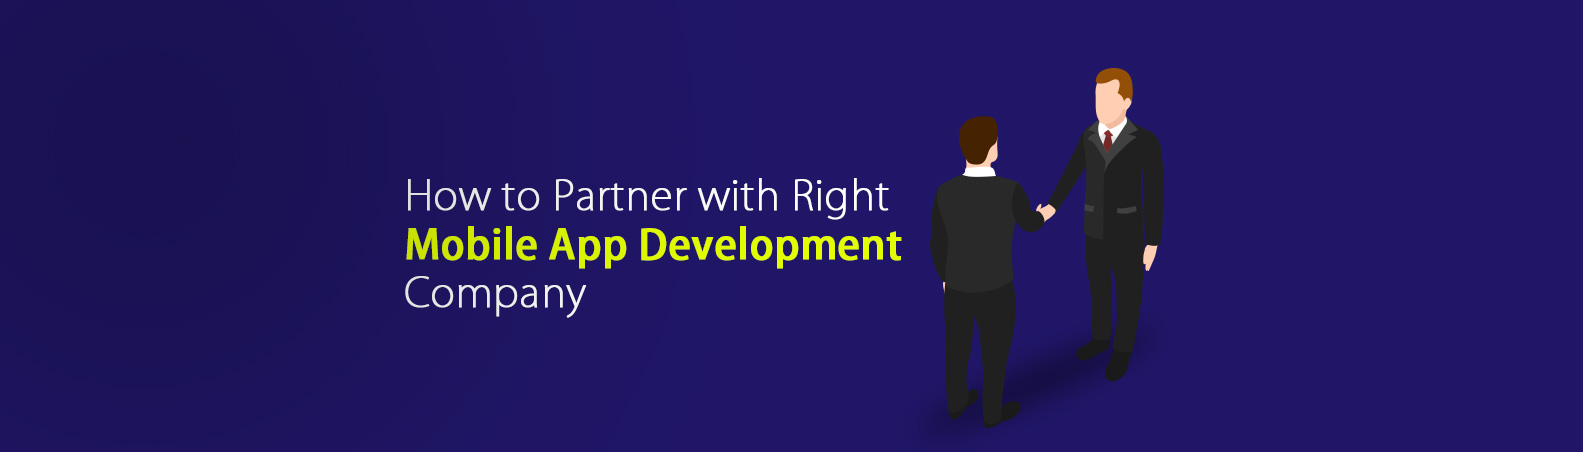 How to Partner with Right Mobile App Development Company